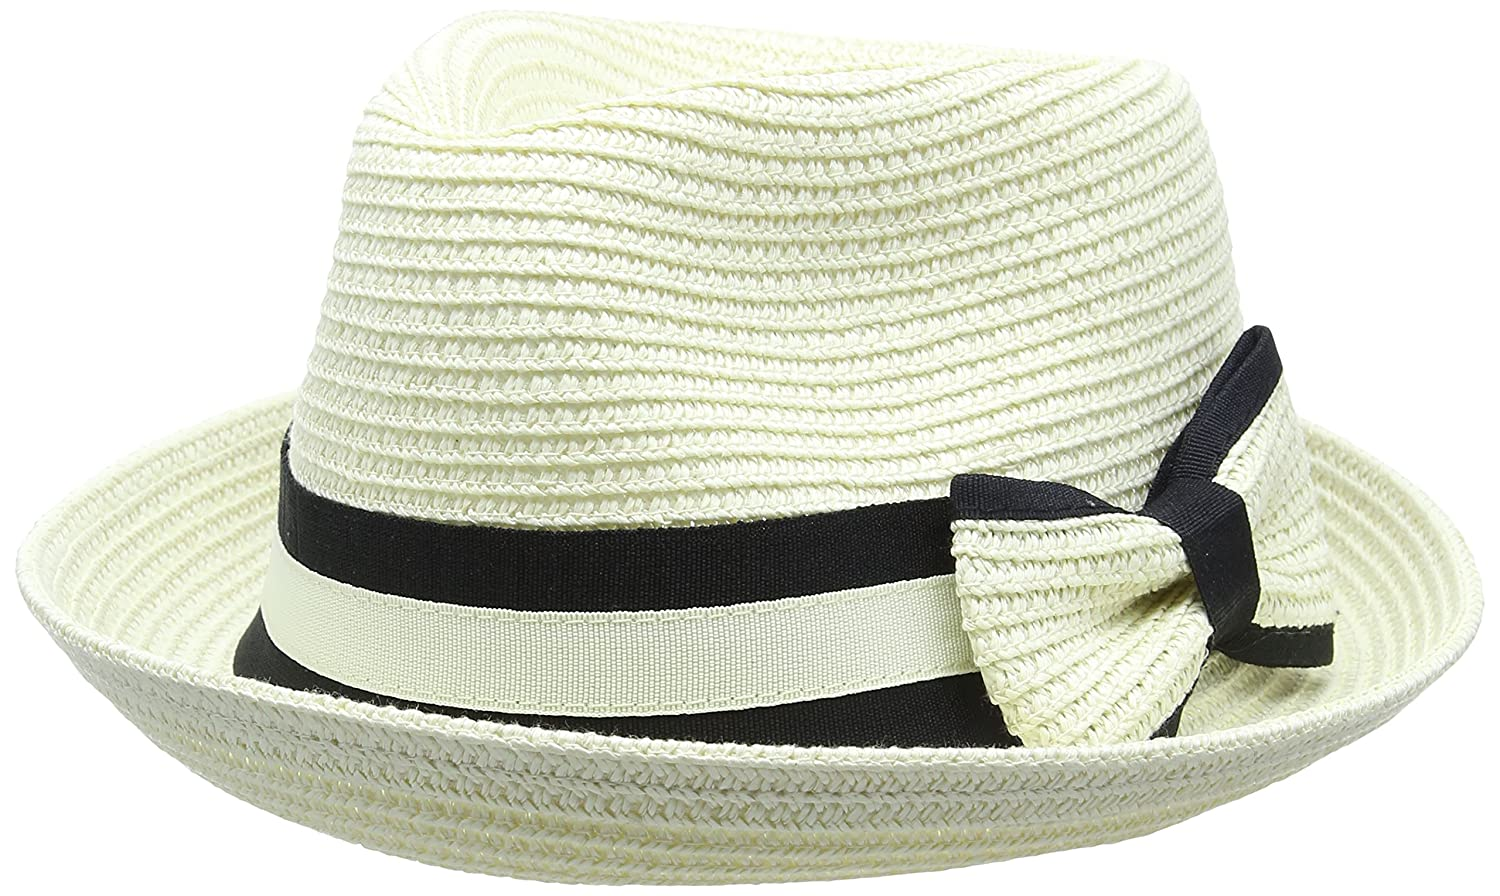 c0658594 Betmar Joanne Trilby Hat, Beige (Natural), One Size: Amazon.co.uk: Clothing